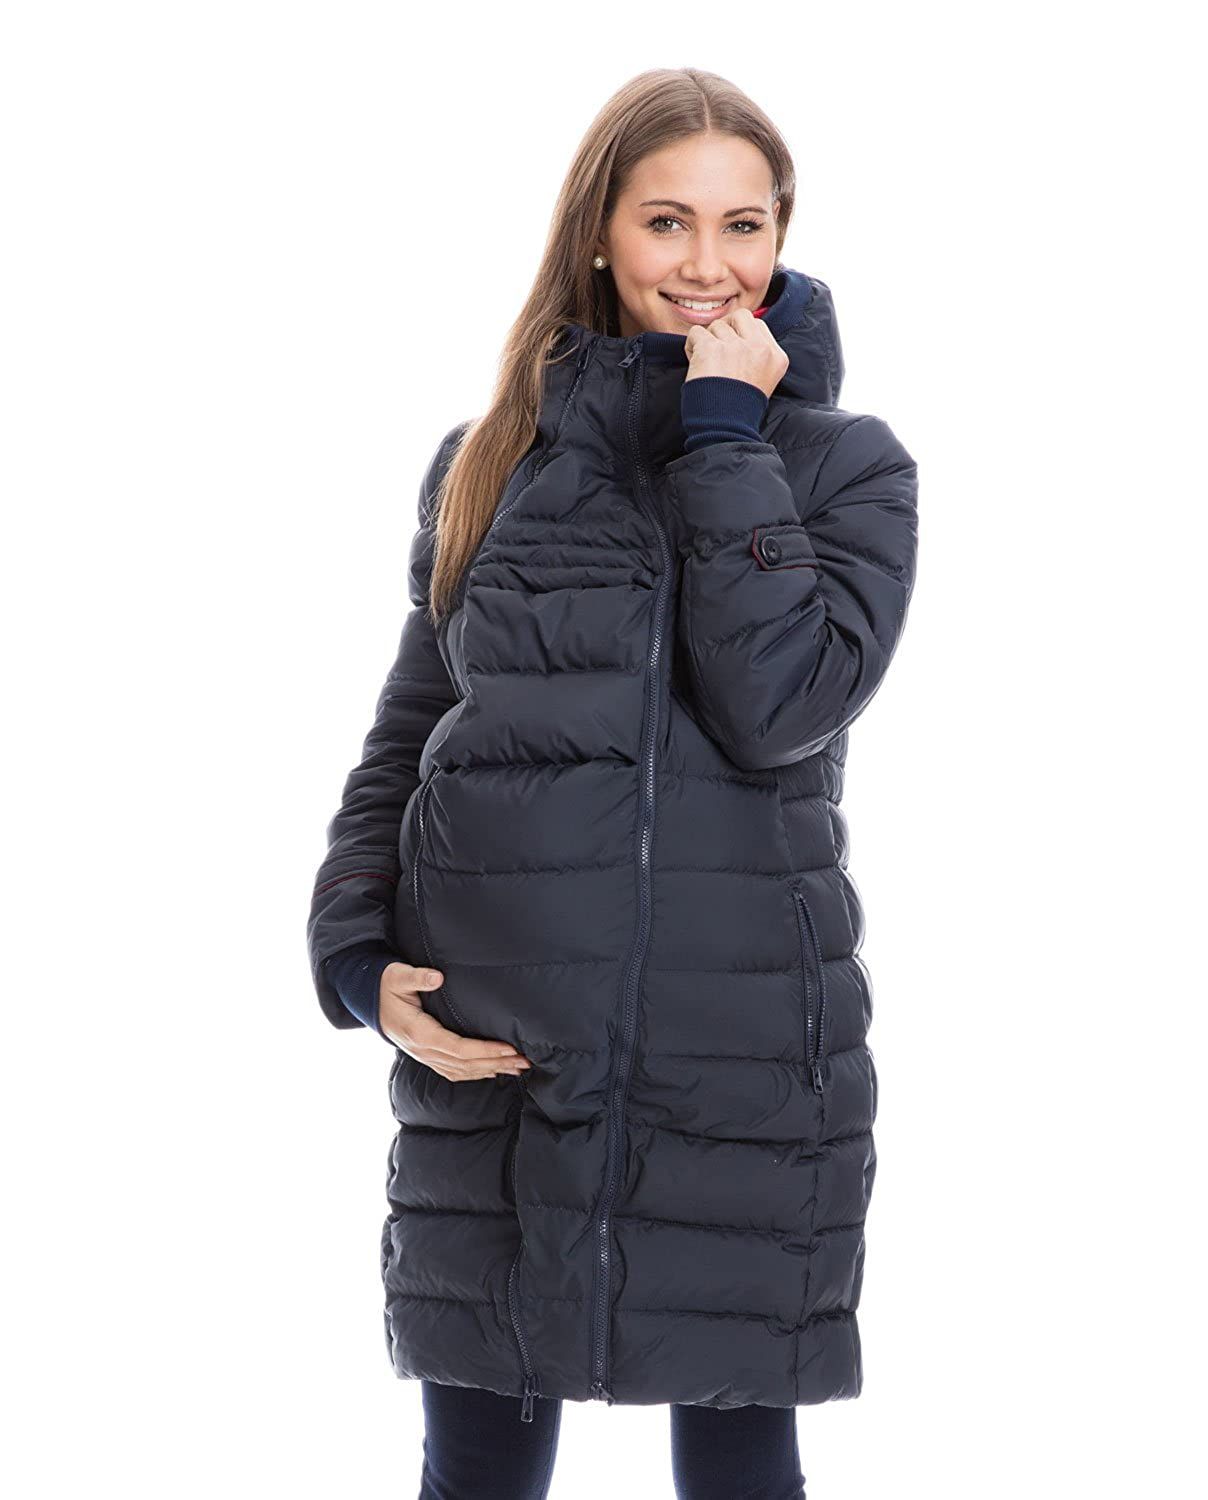 GoFuture Women Bump-and-Baby Down Jacket 4in1 Winter GF2265